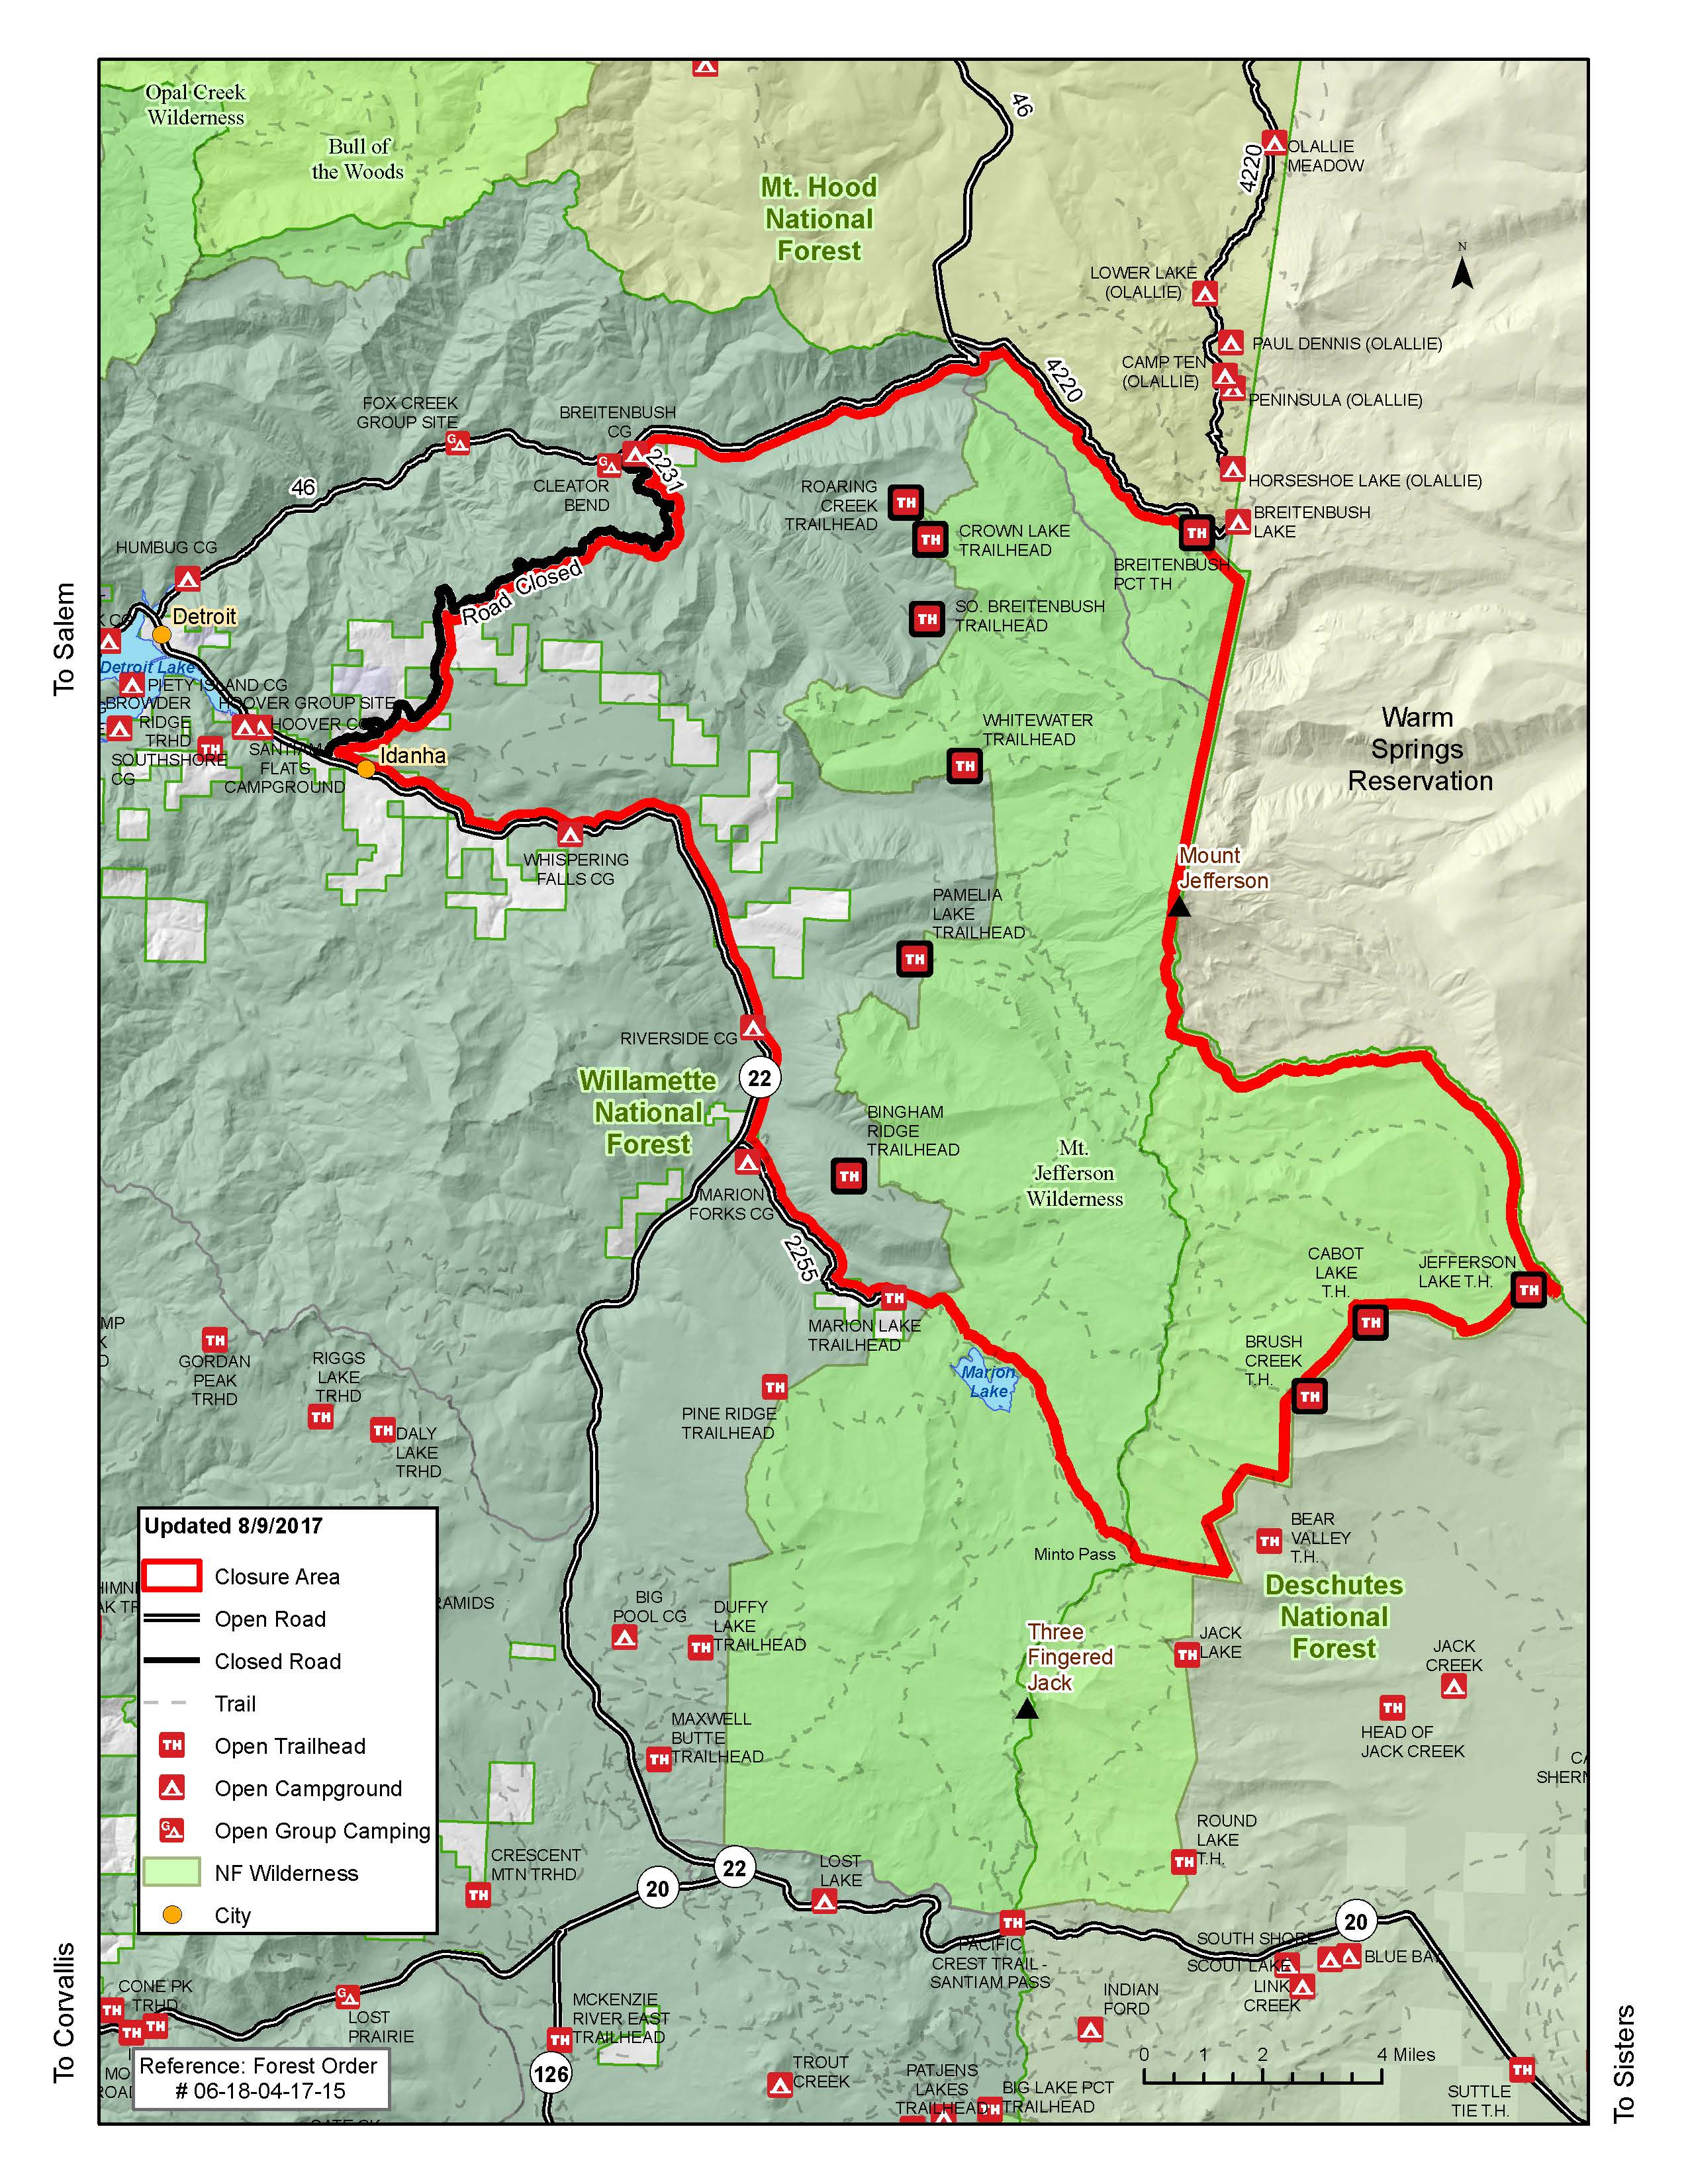 Forest Service Closure Map Of Whitewater Fire In The Mt Jefferson